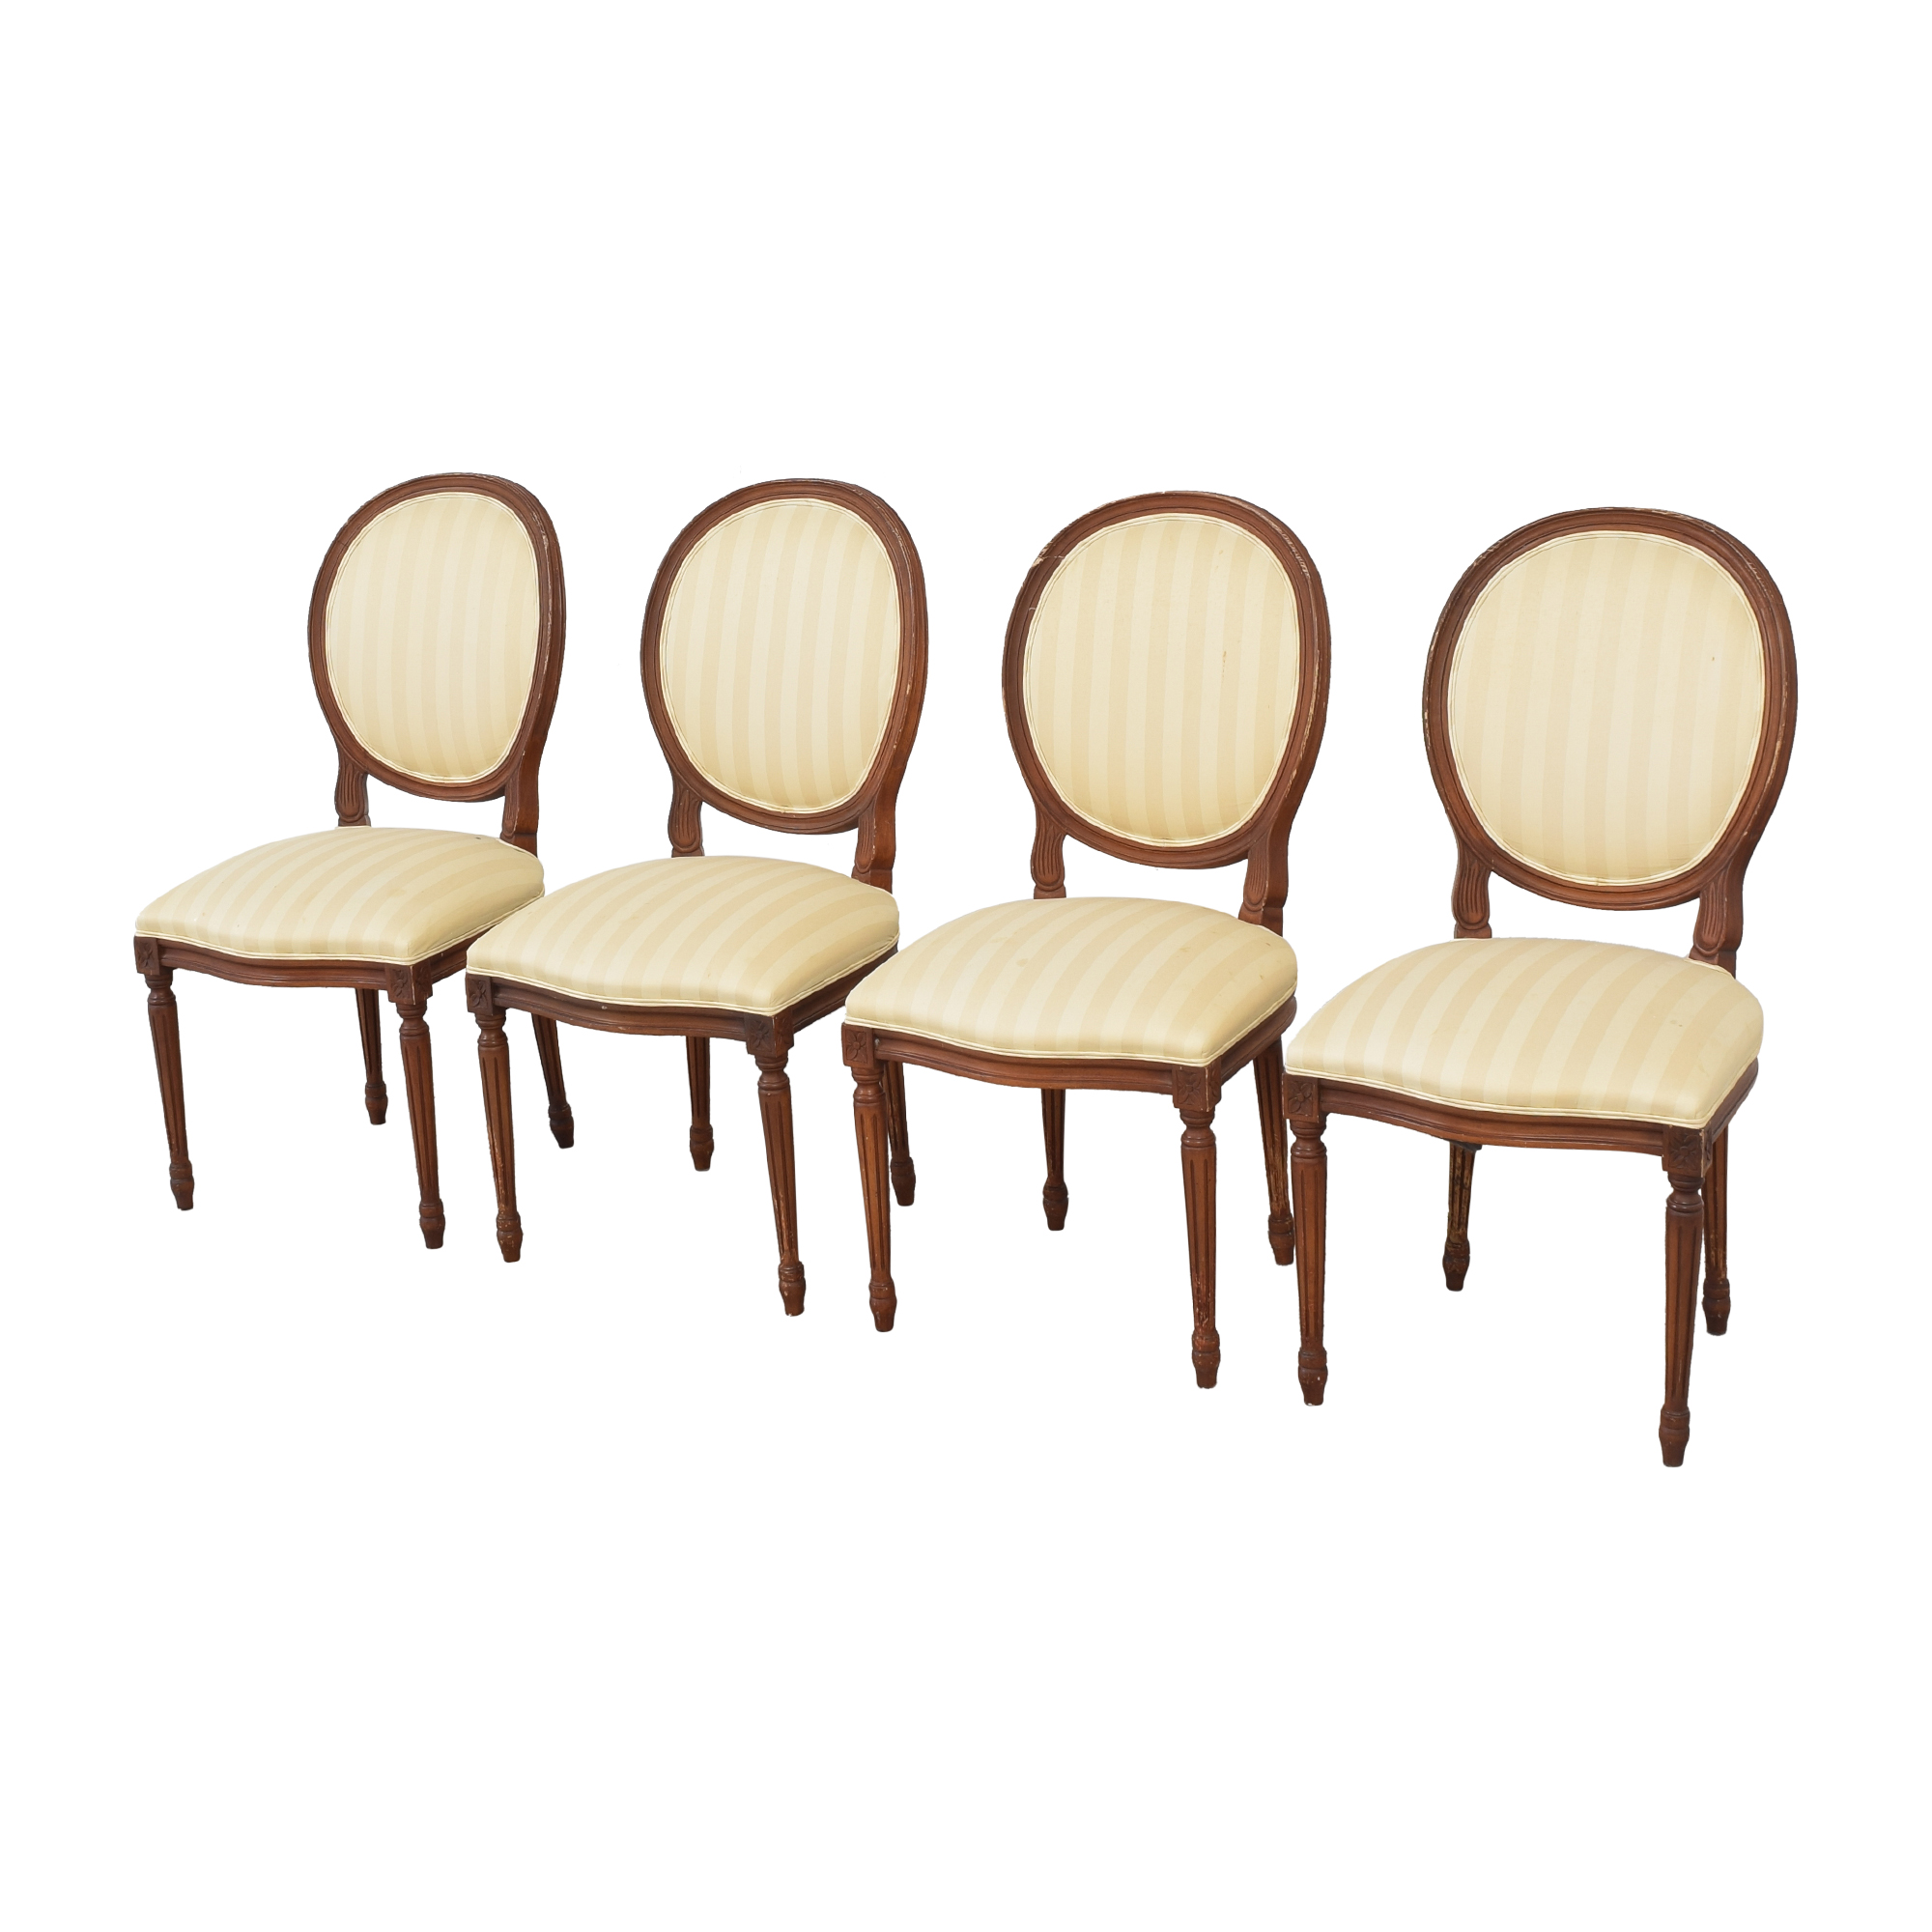 French Style Dining Chairs with Slip Covers Dining Chairs